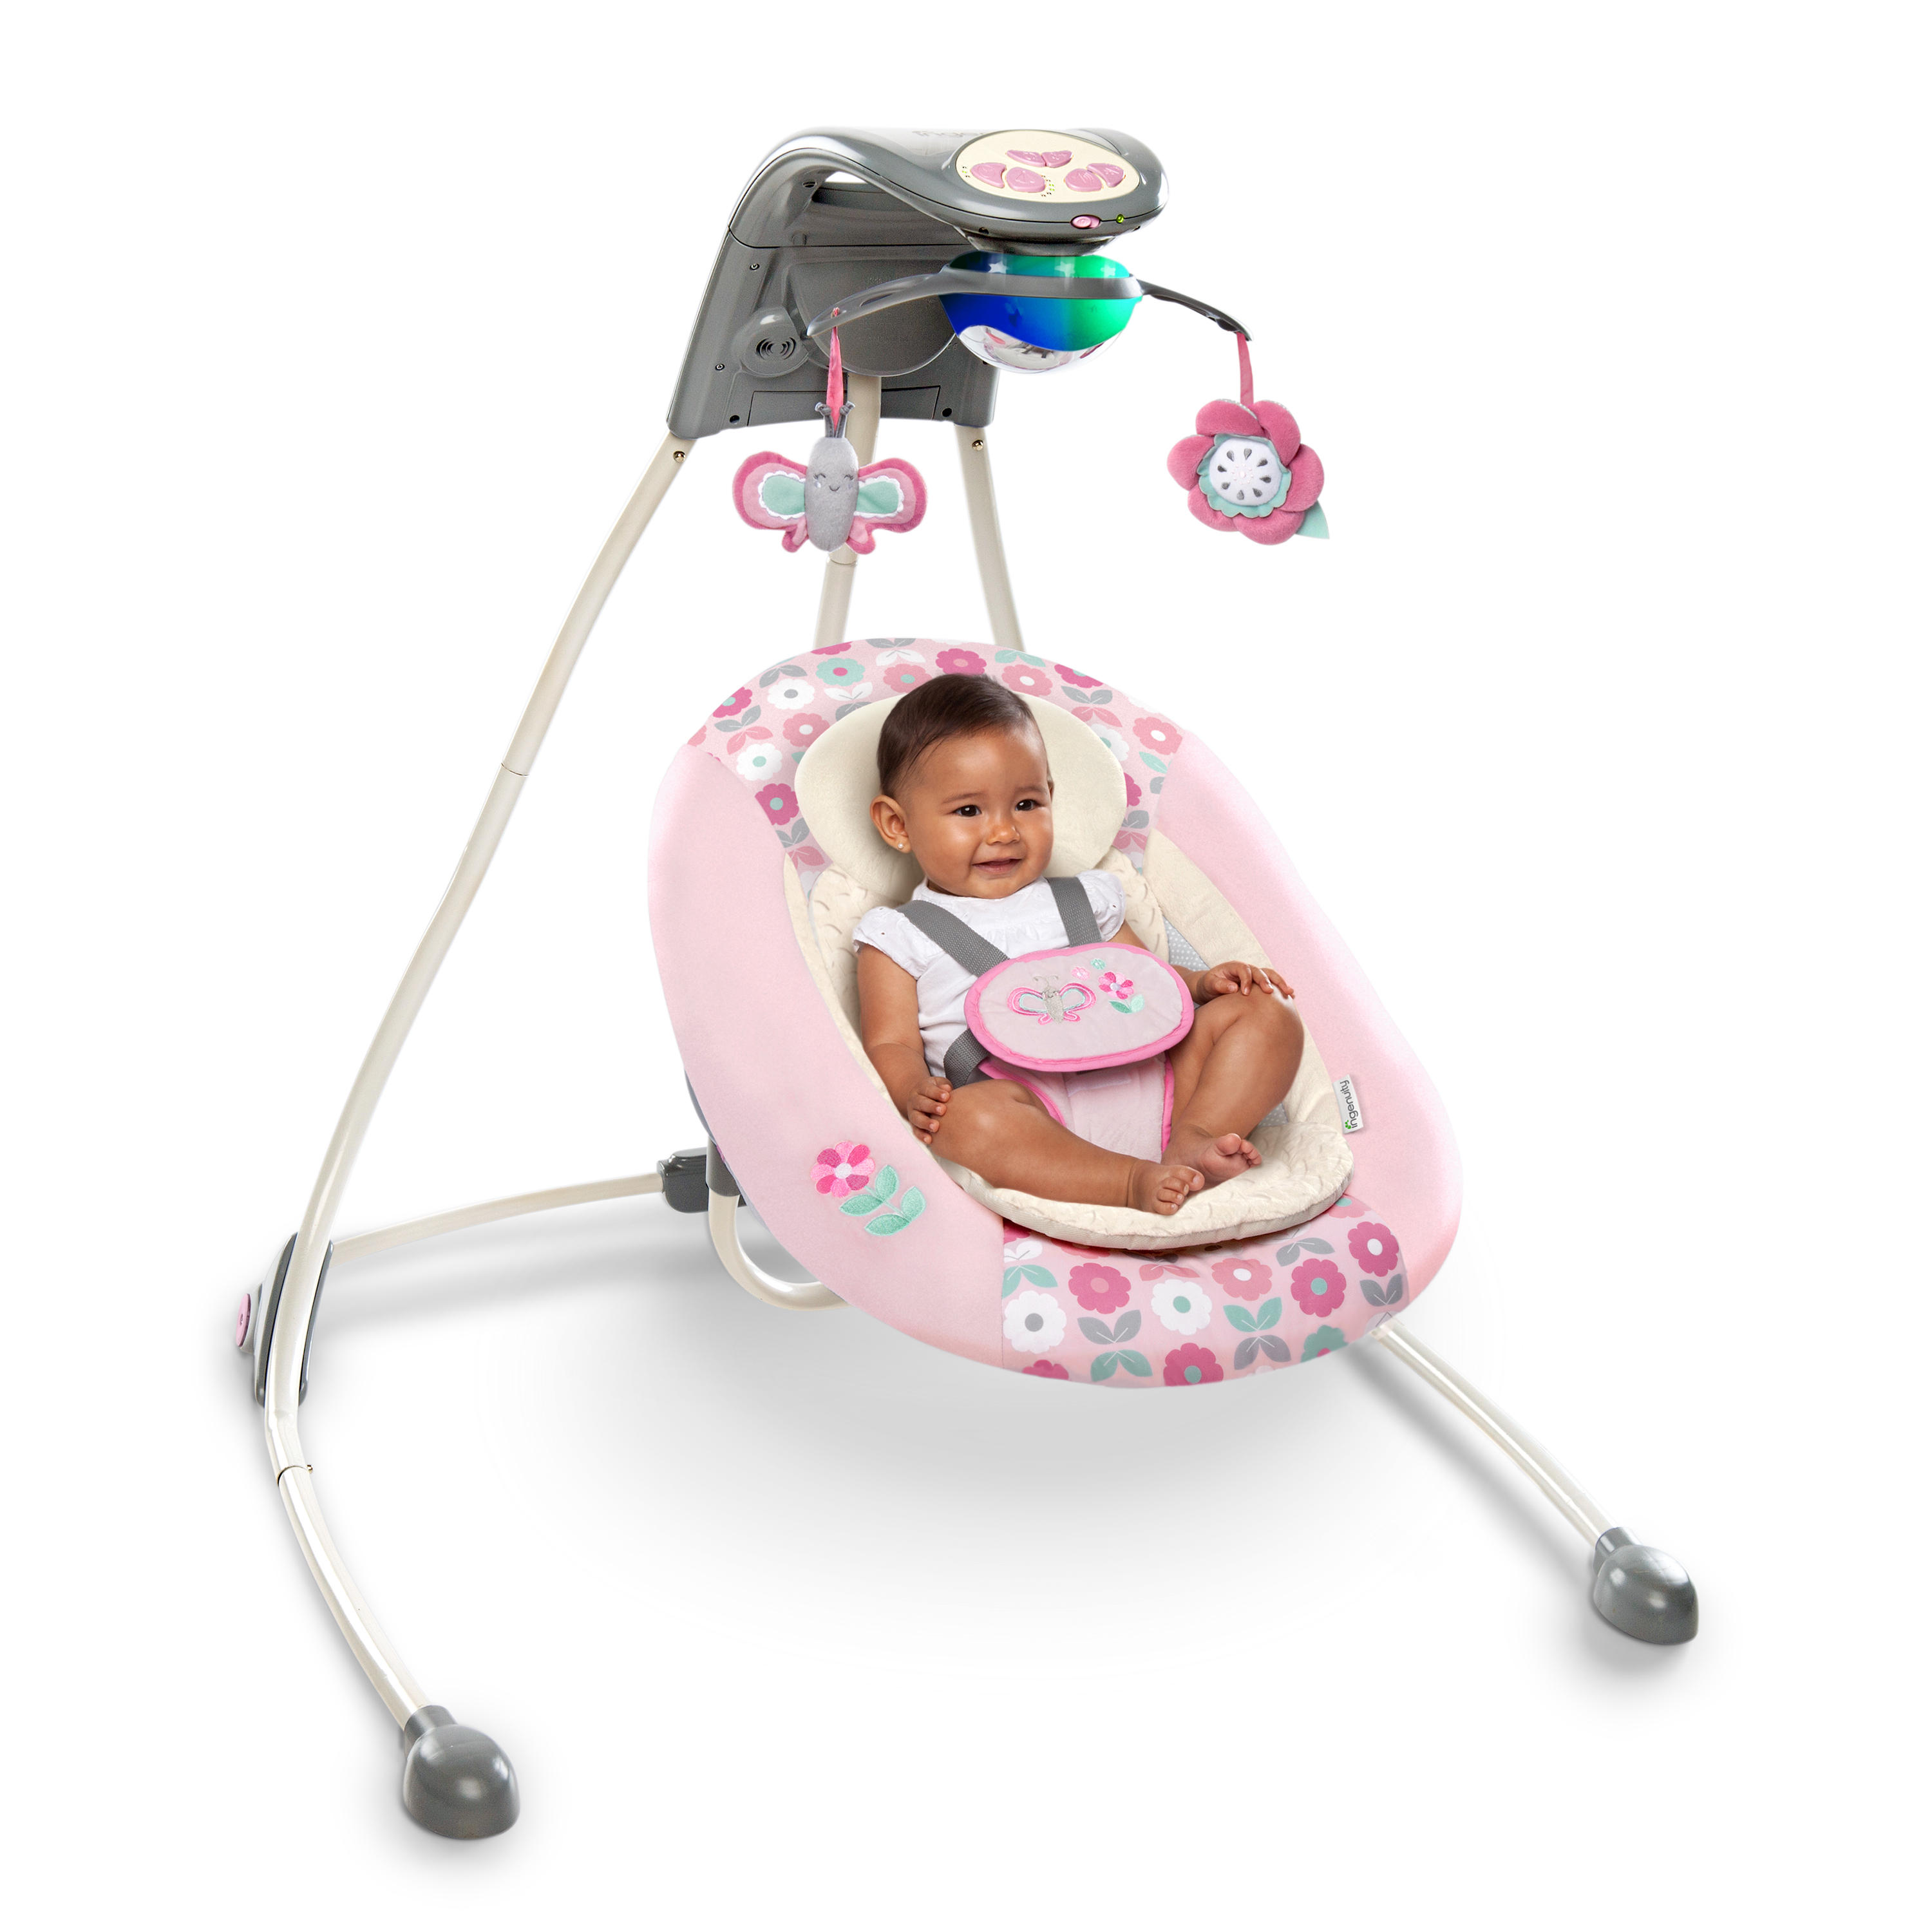 InLighten Cradling Swing™ - Phoebe™